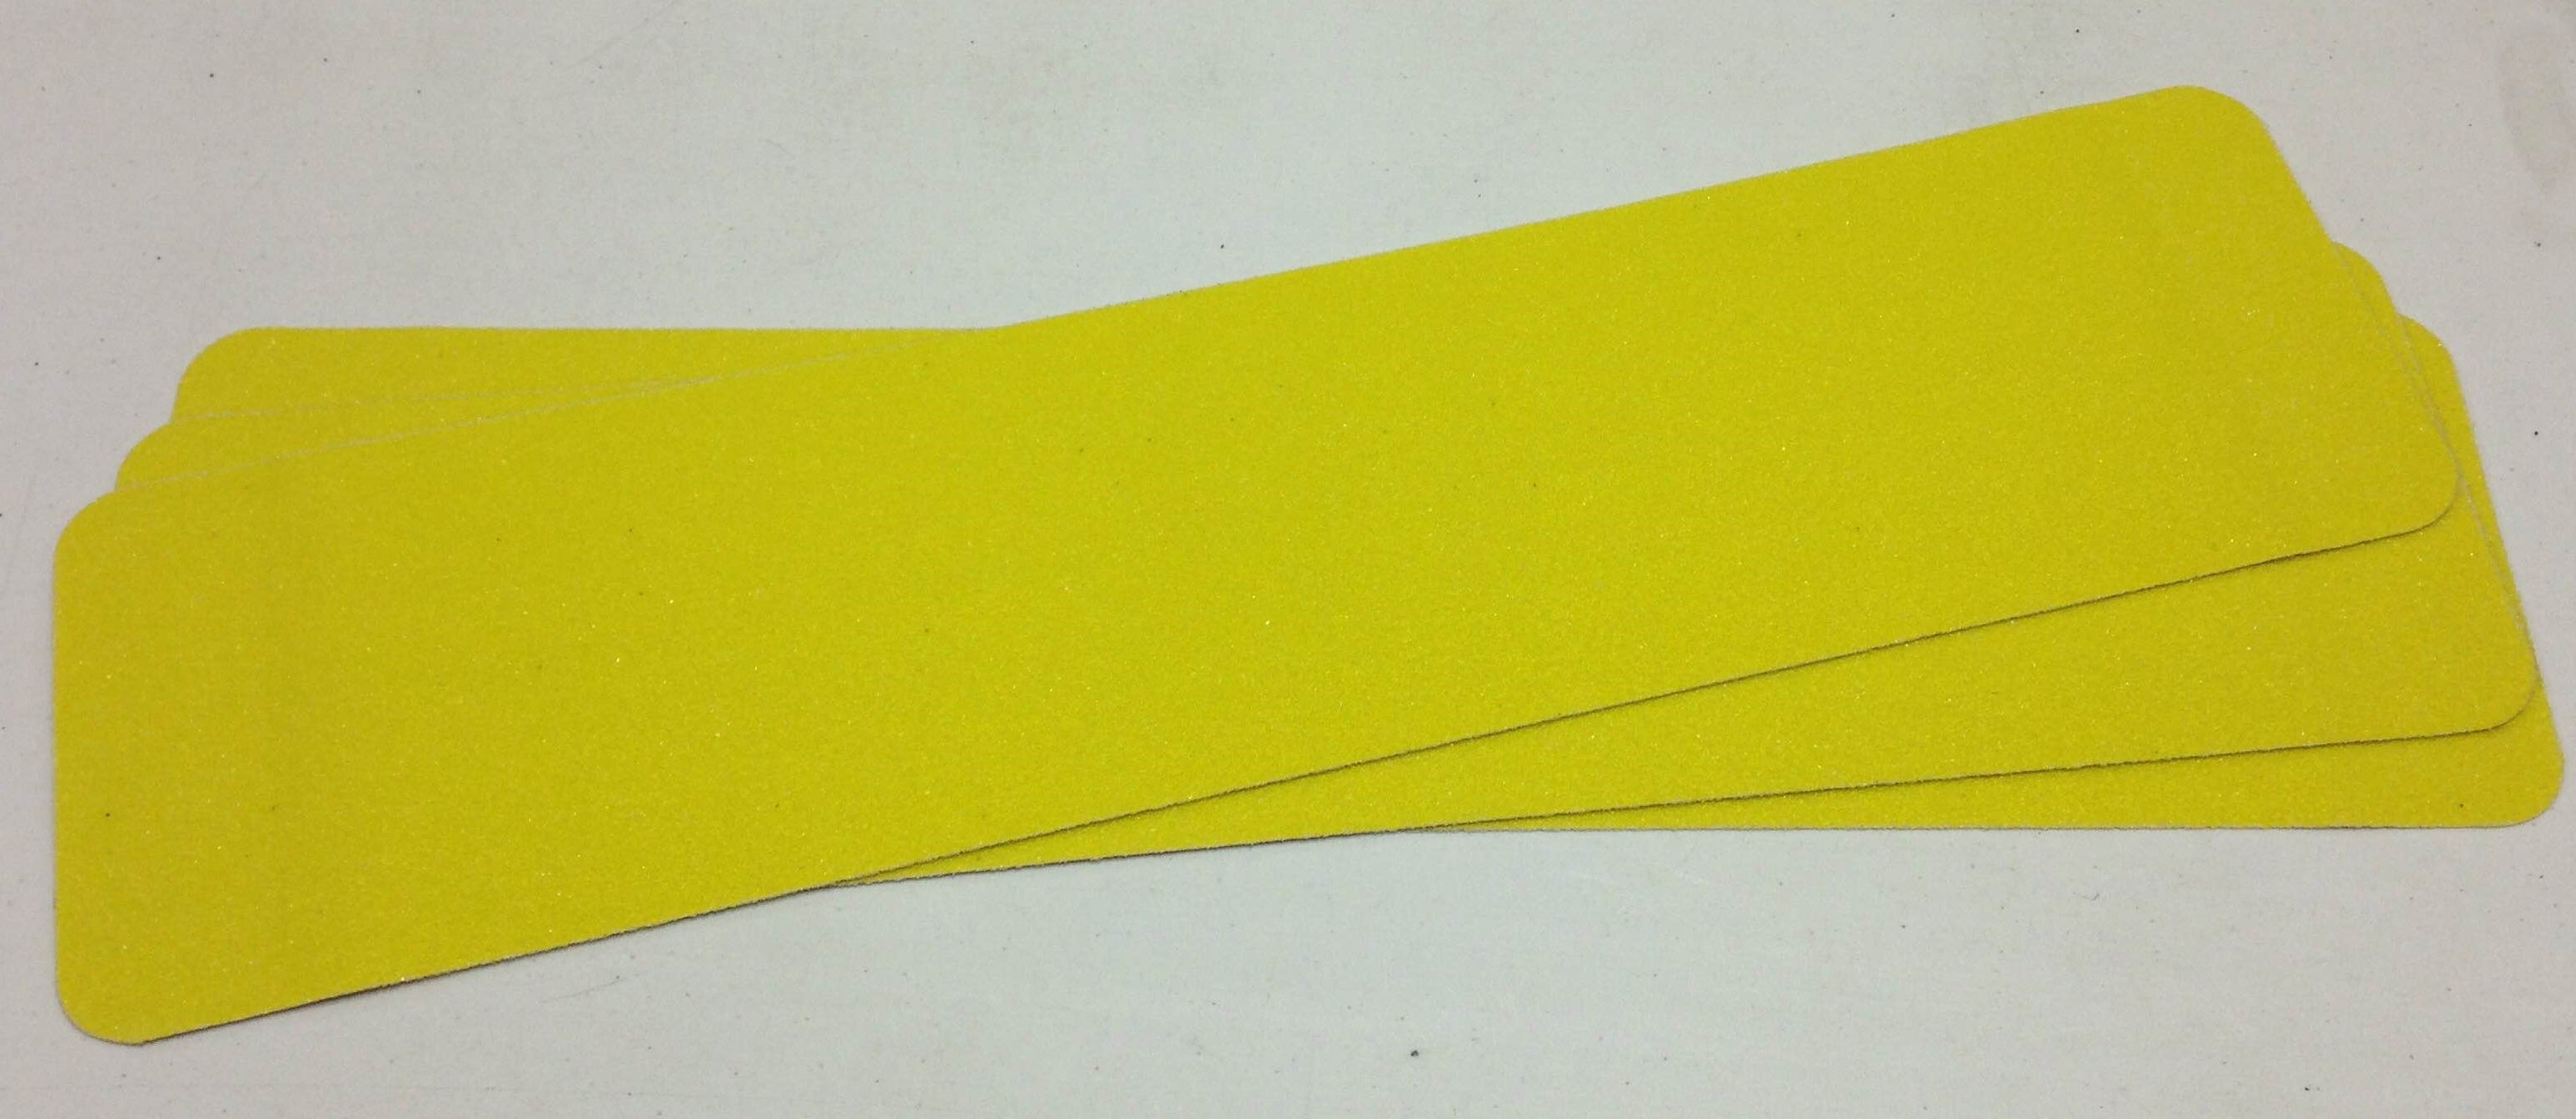 "6"" X 24"" Abrasive Yellow Hazard Warning Anti Slip Non Skid Treads Safety Tape 84608 Package of 50"